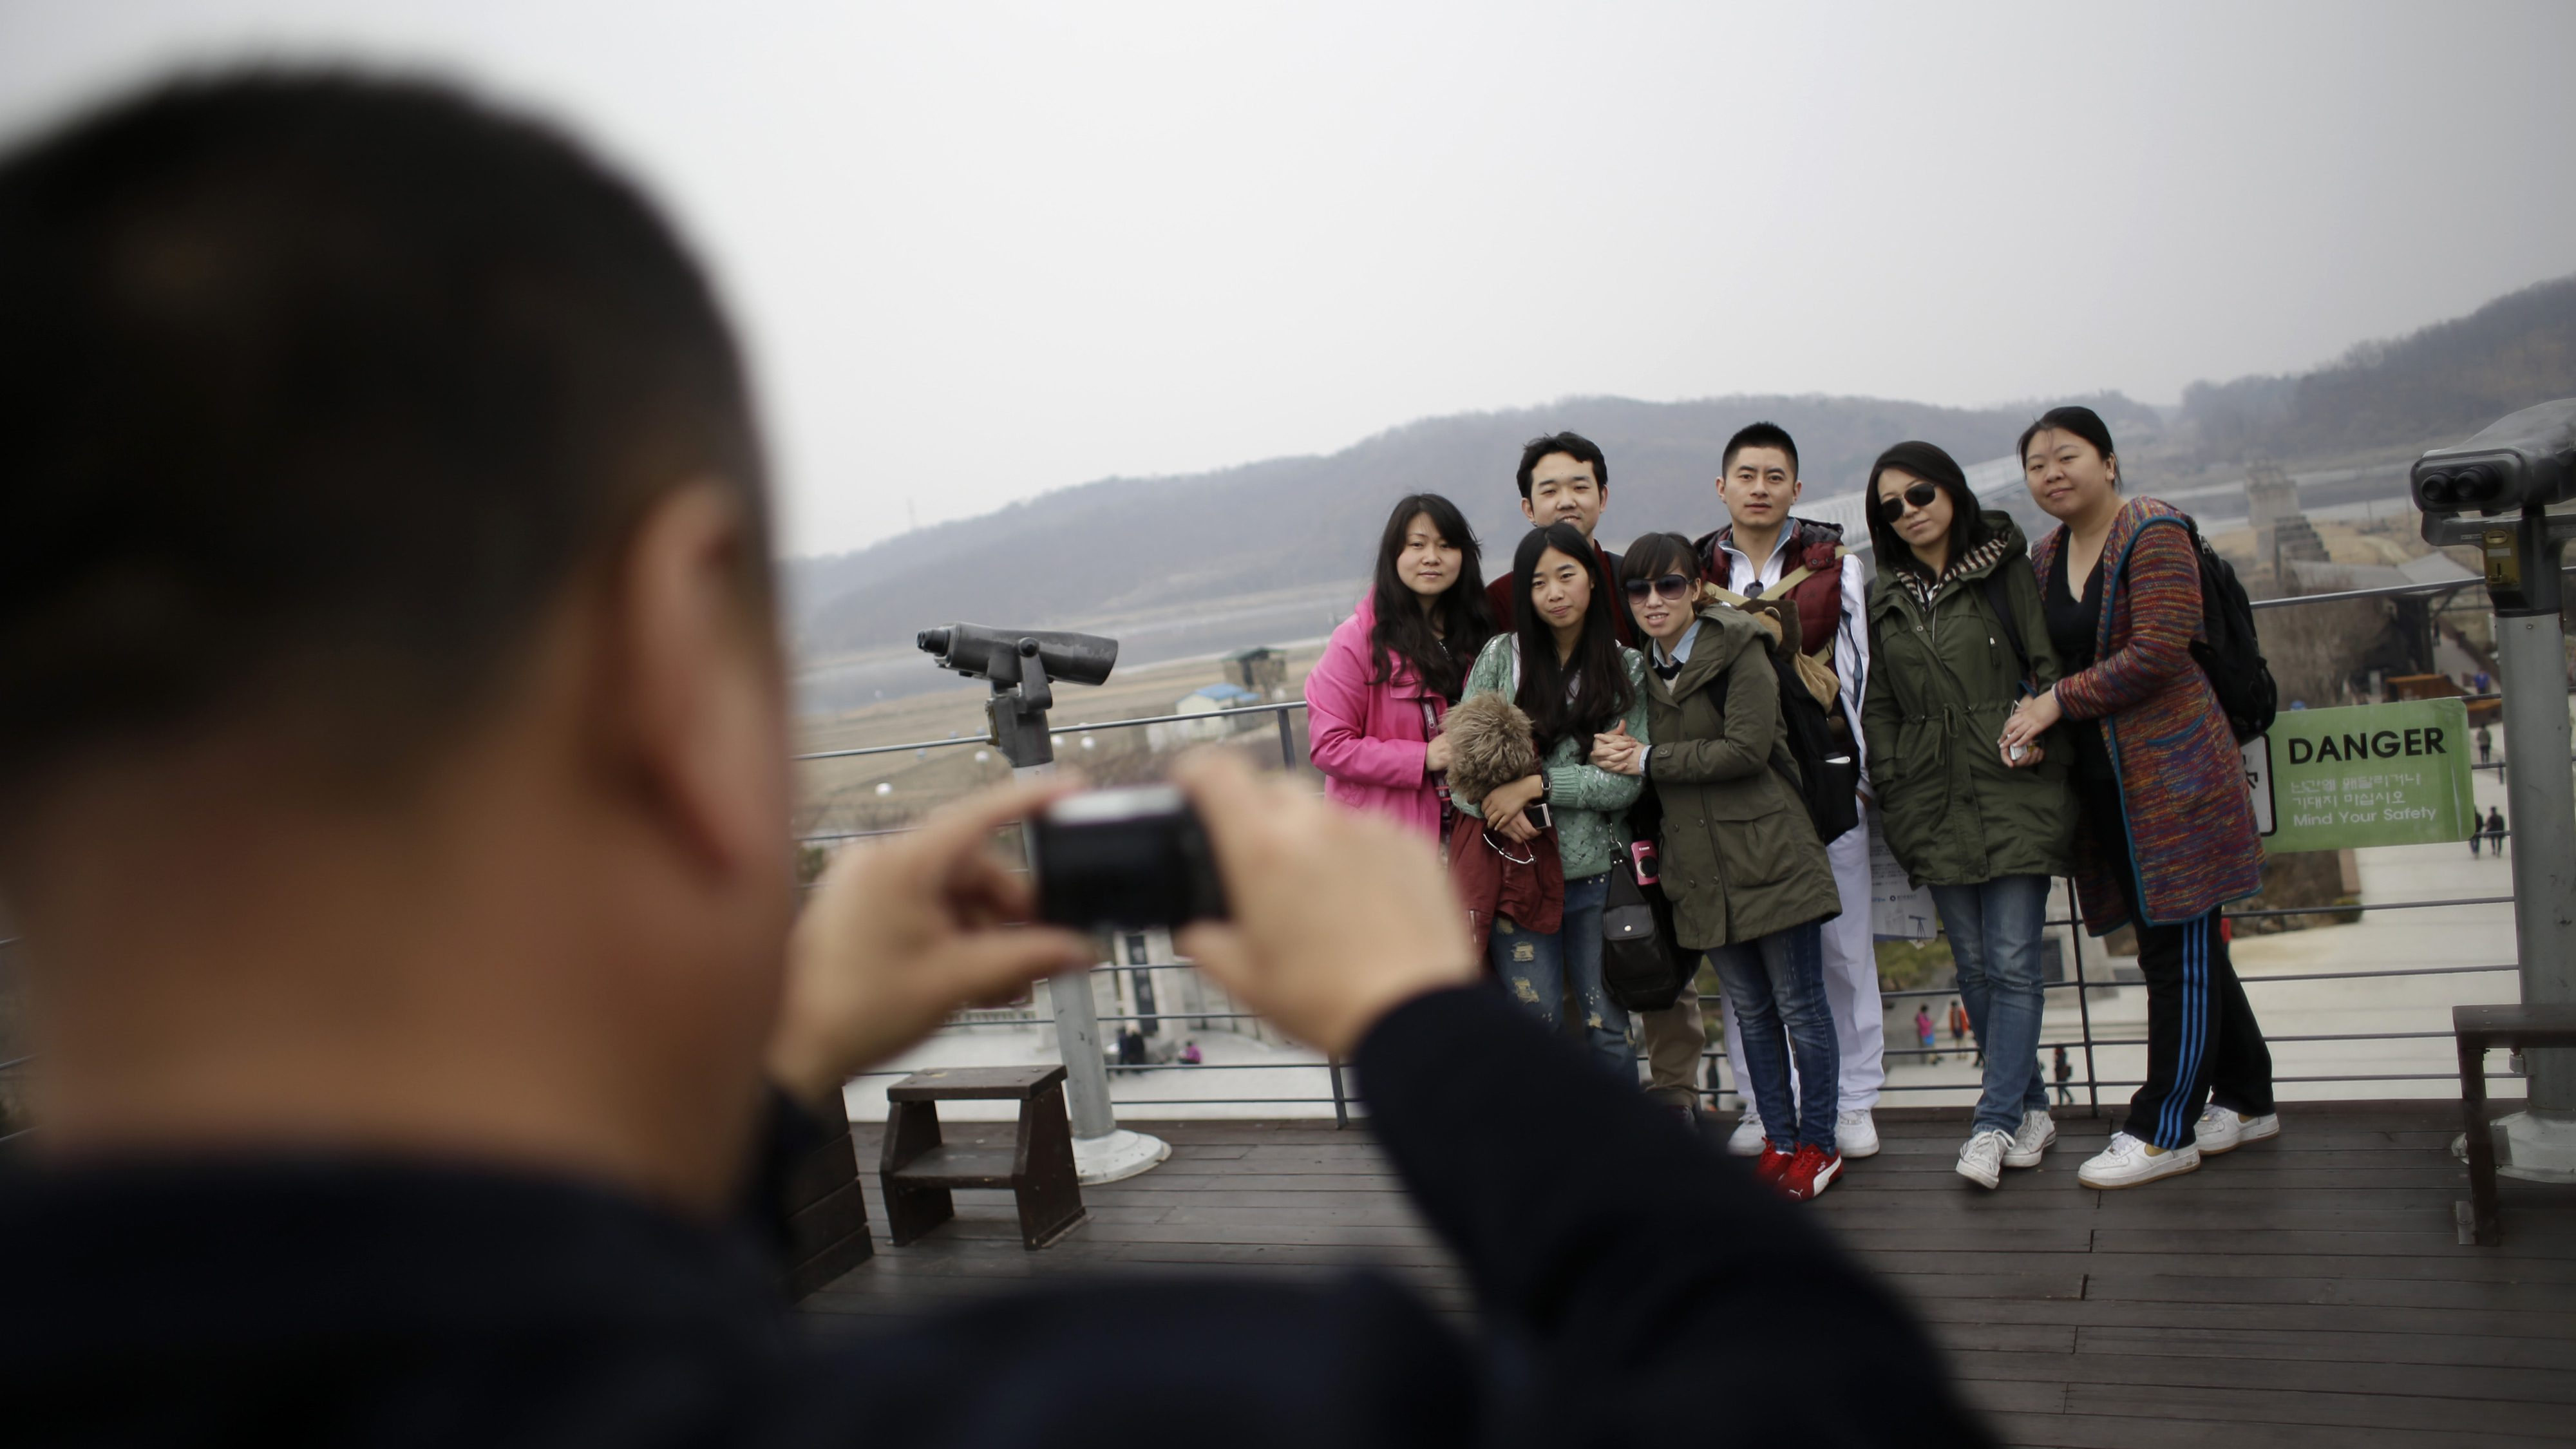 Chinese tourists take pictures at the Imjingak Pavilion near the border village of Panmunjom, dividing the two Koreas since the Korean War, in Paju, north of Seoul, South Korea, April 5, 2013.